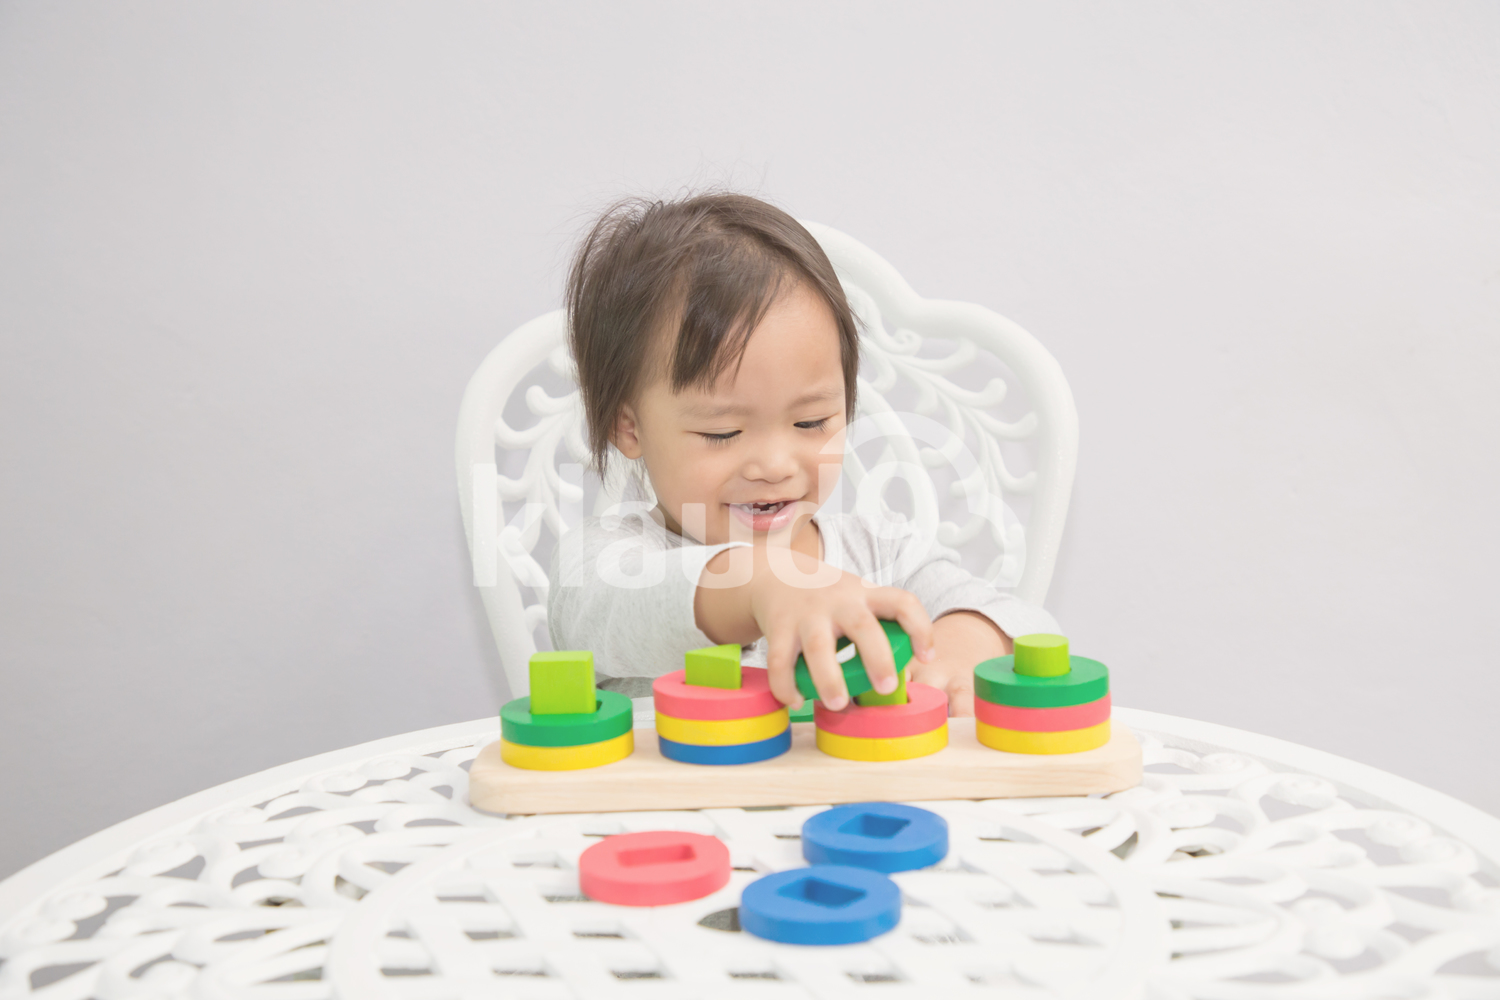 Happy toddler with colorful blocks